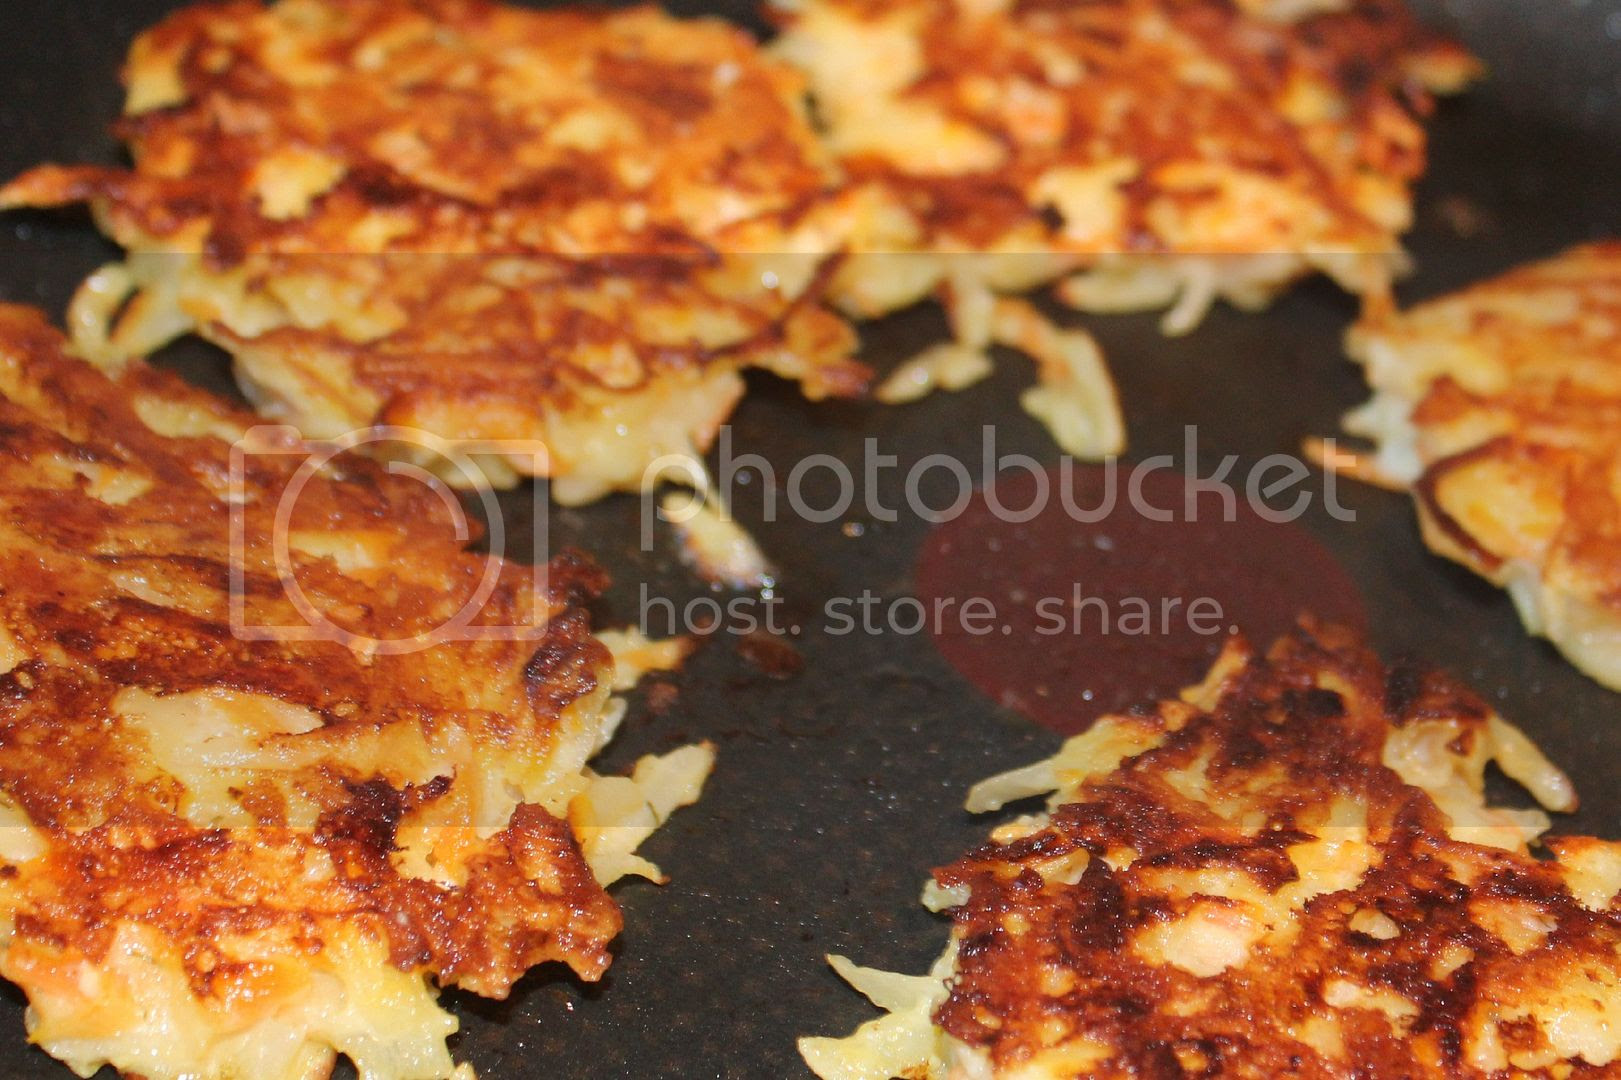 cooked potato cakes